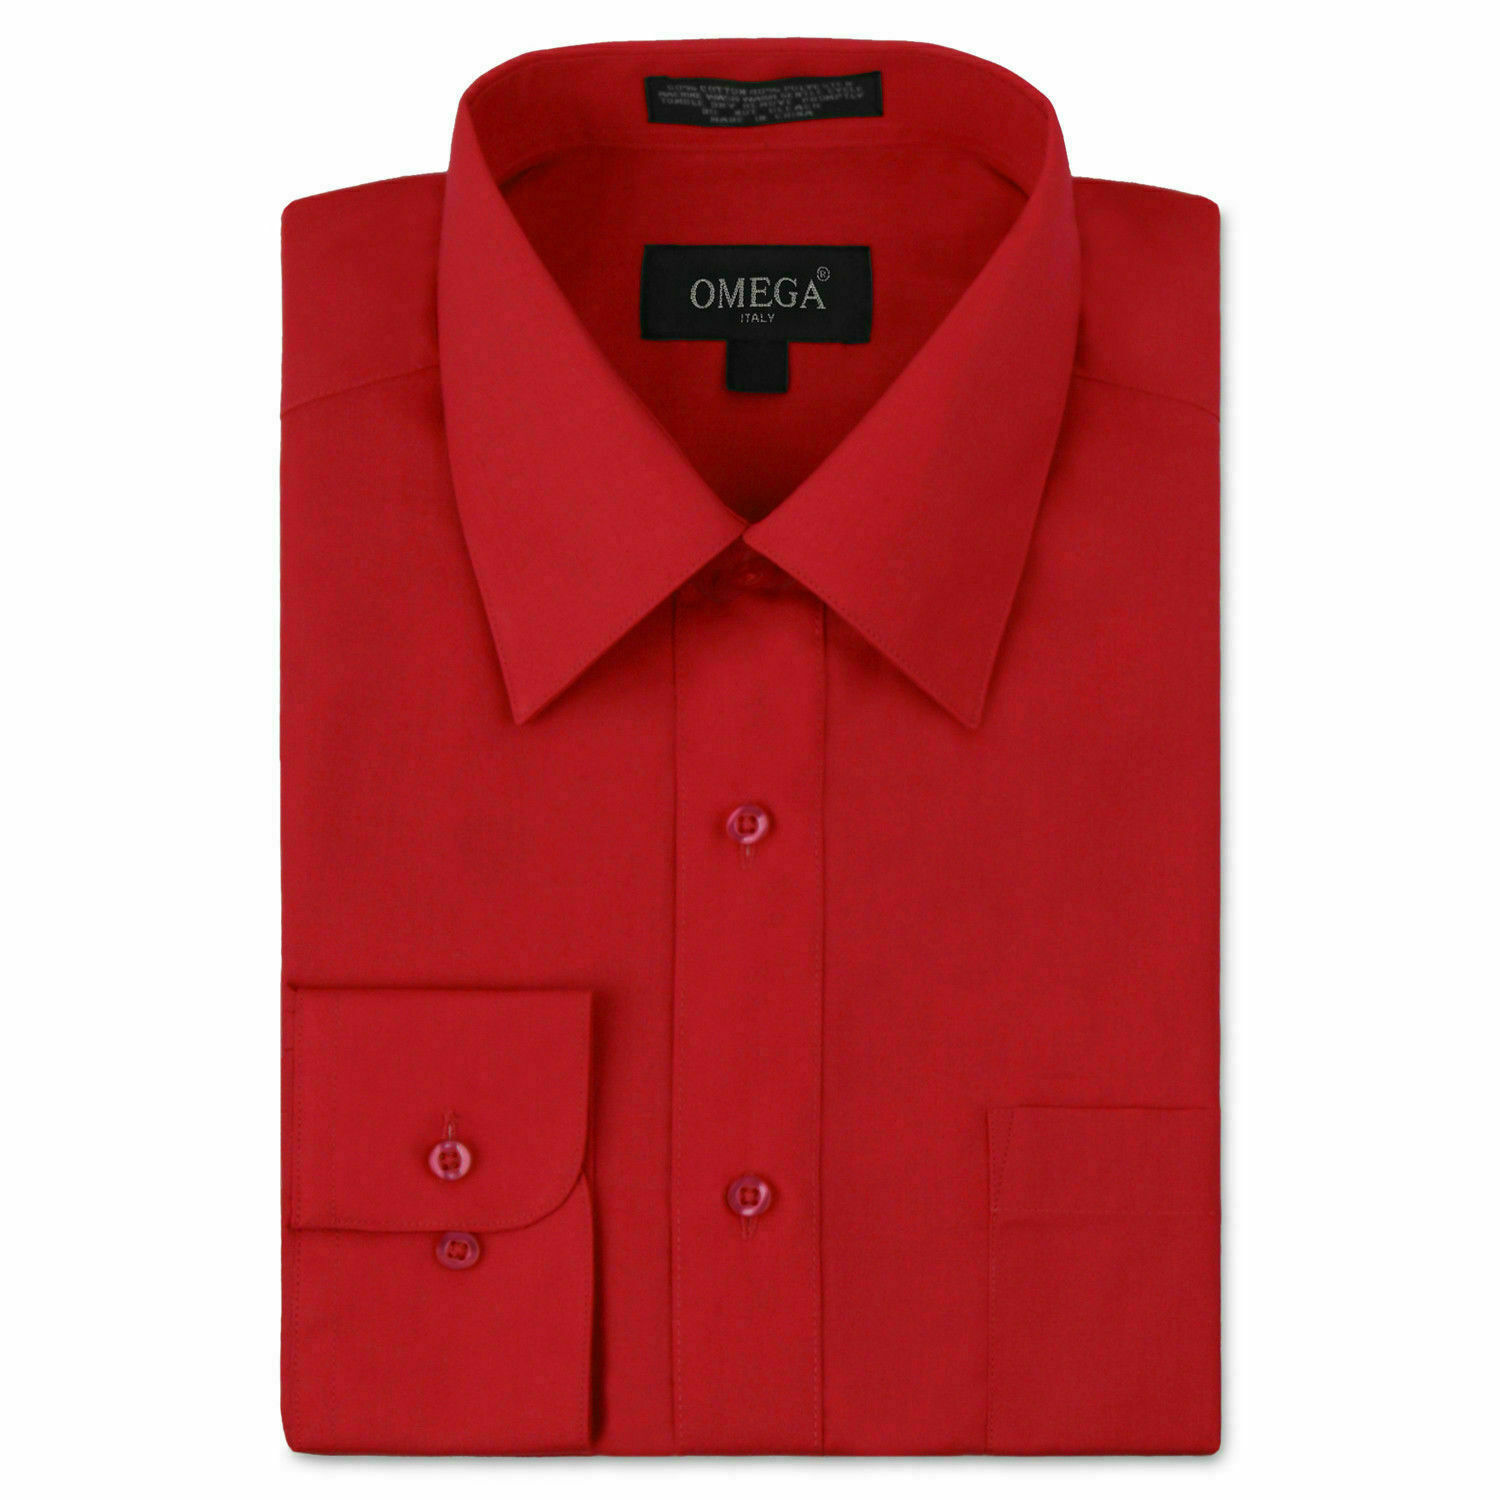 Omega Italy Men's Long Sleeve Solid Regular Fit Red Dress Shirt - XL